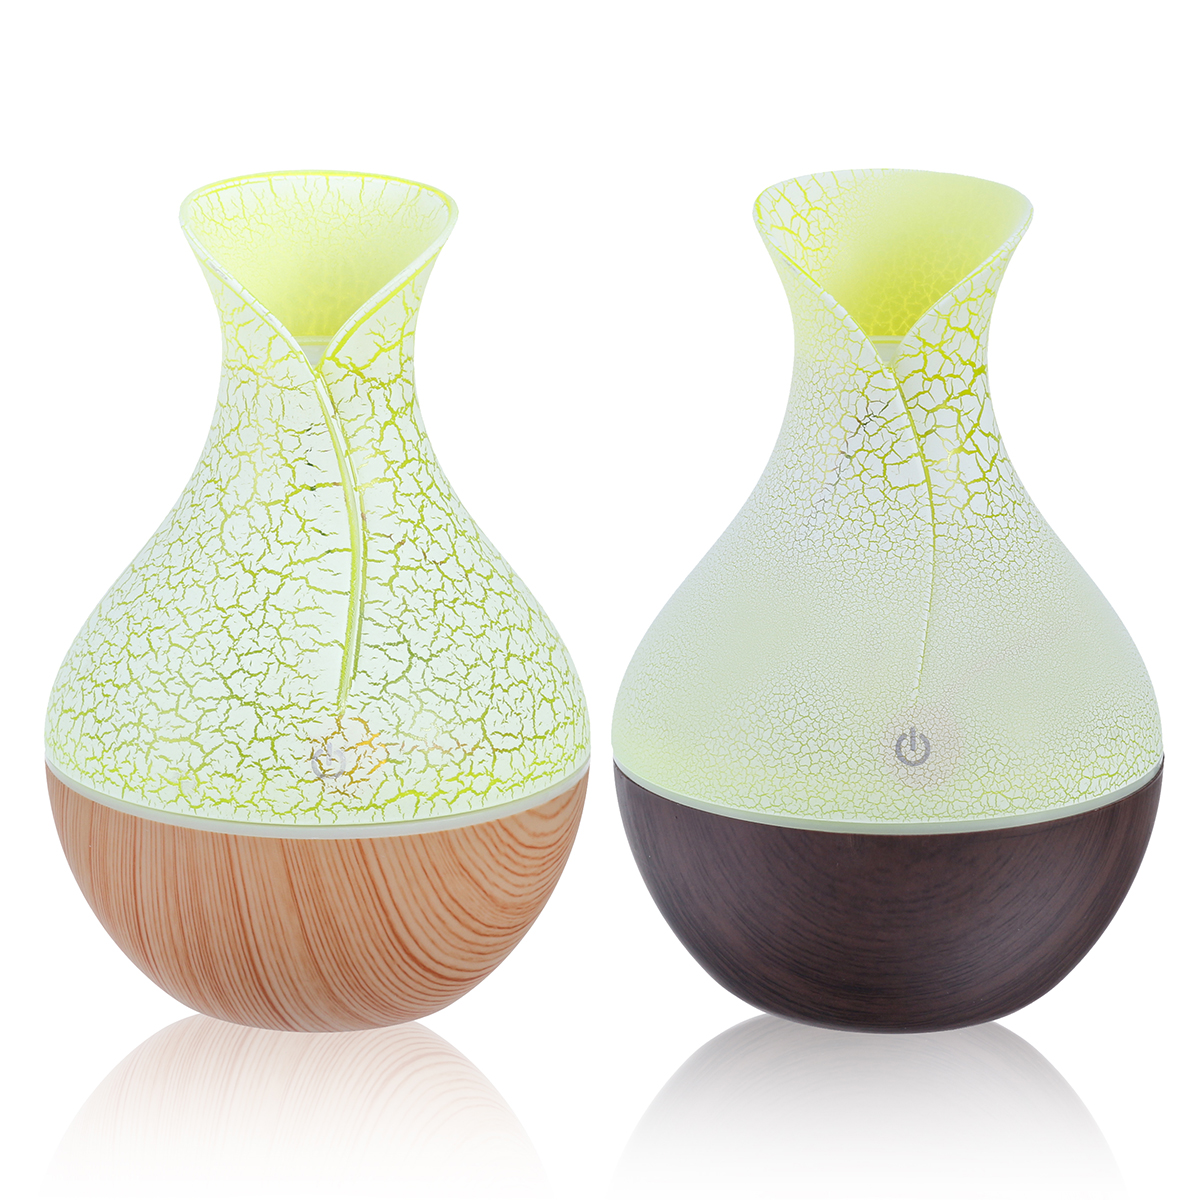 130ml LED USB Mini Vase Ultrasonic Air Humidifier Low Noise Arom